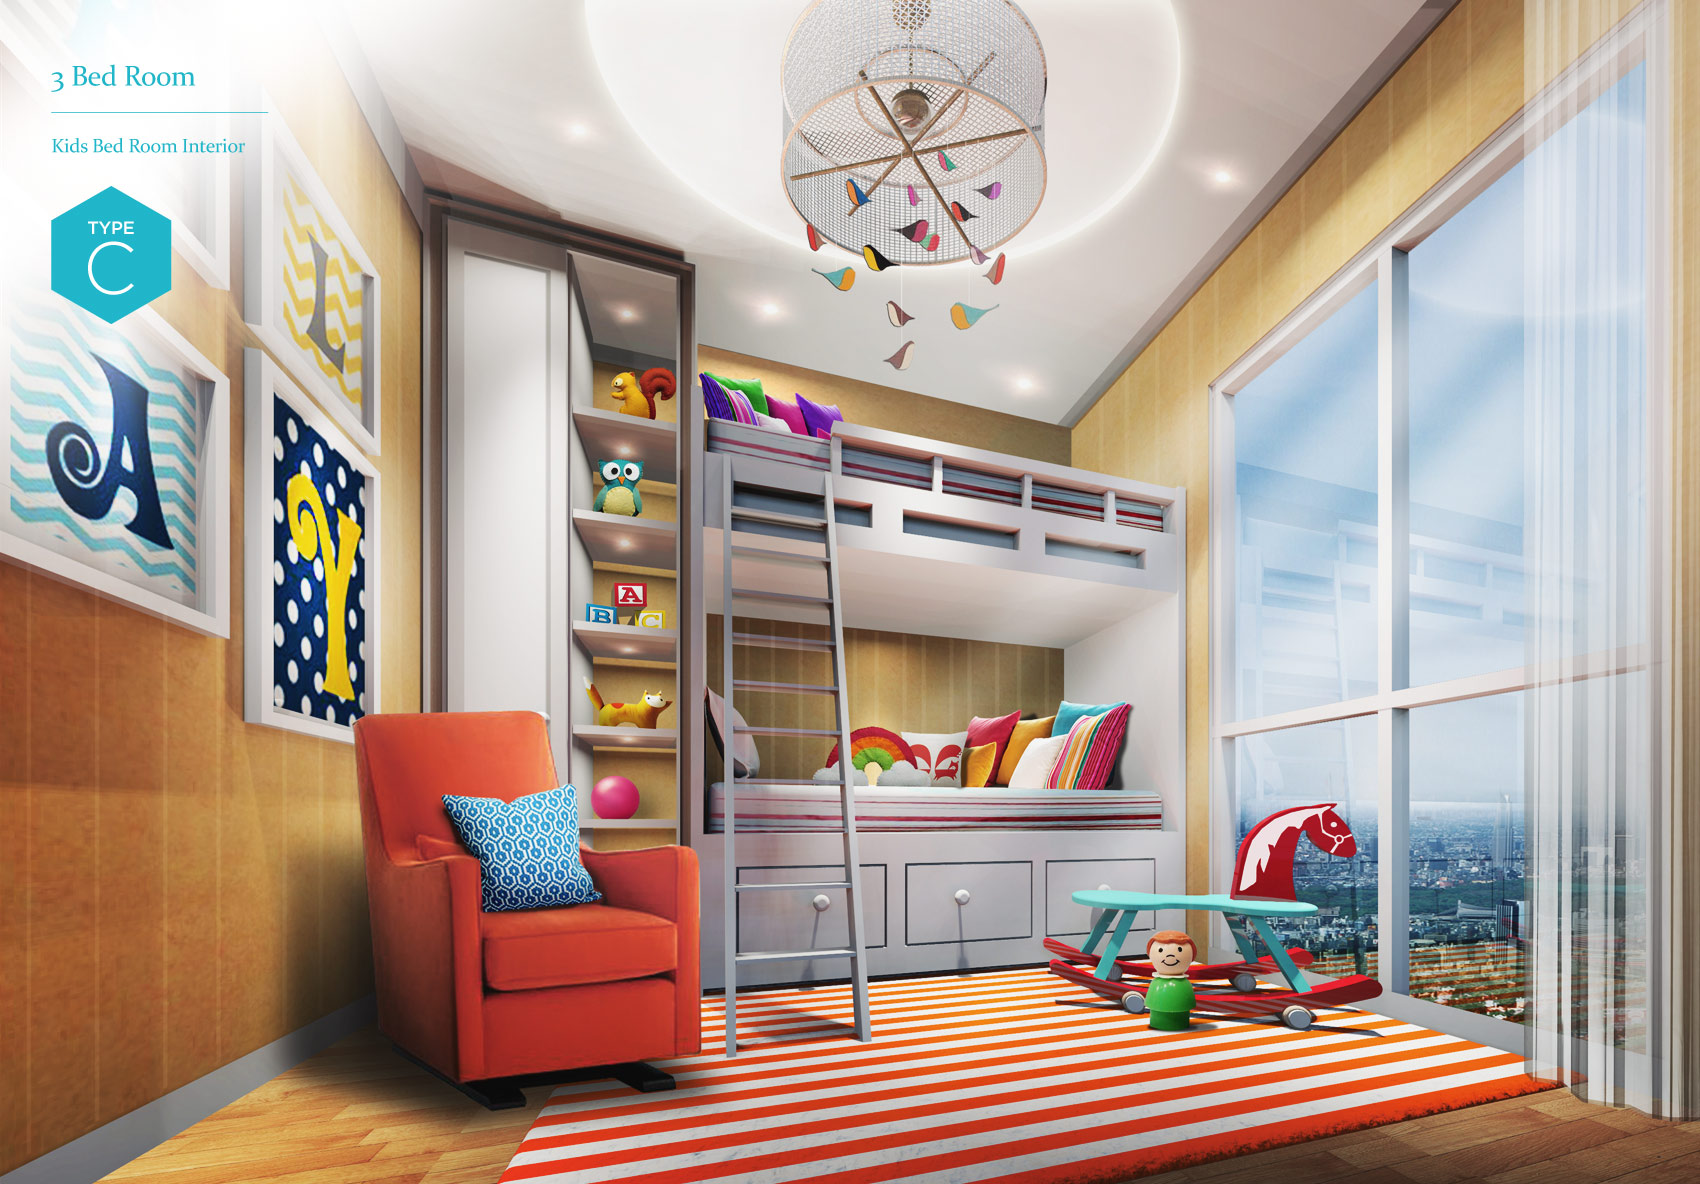 Sold Out 3 Bedroom Kid S Bedroom Interior Type C Pollux Chadstone Superblock